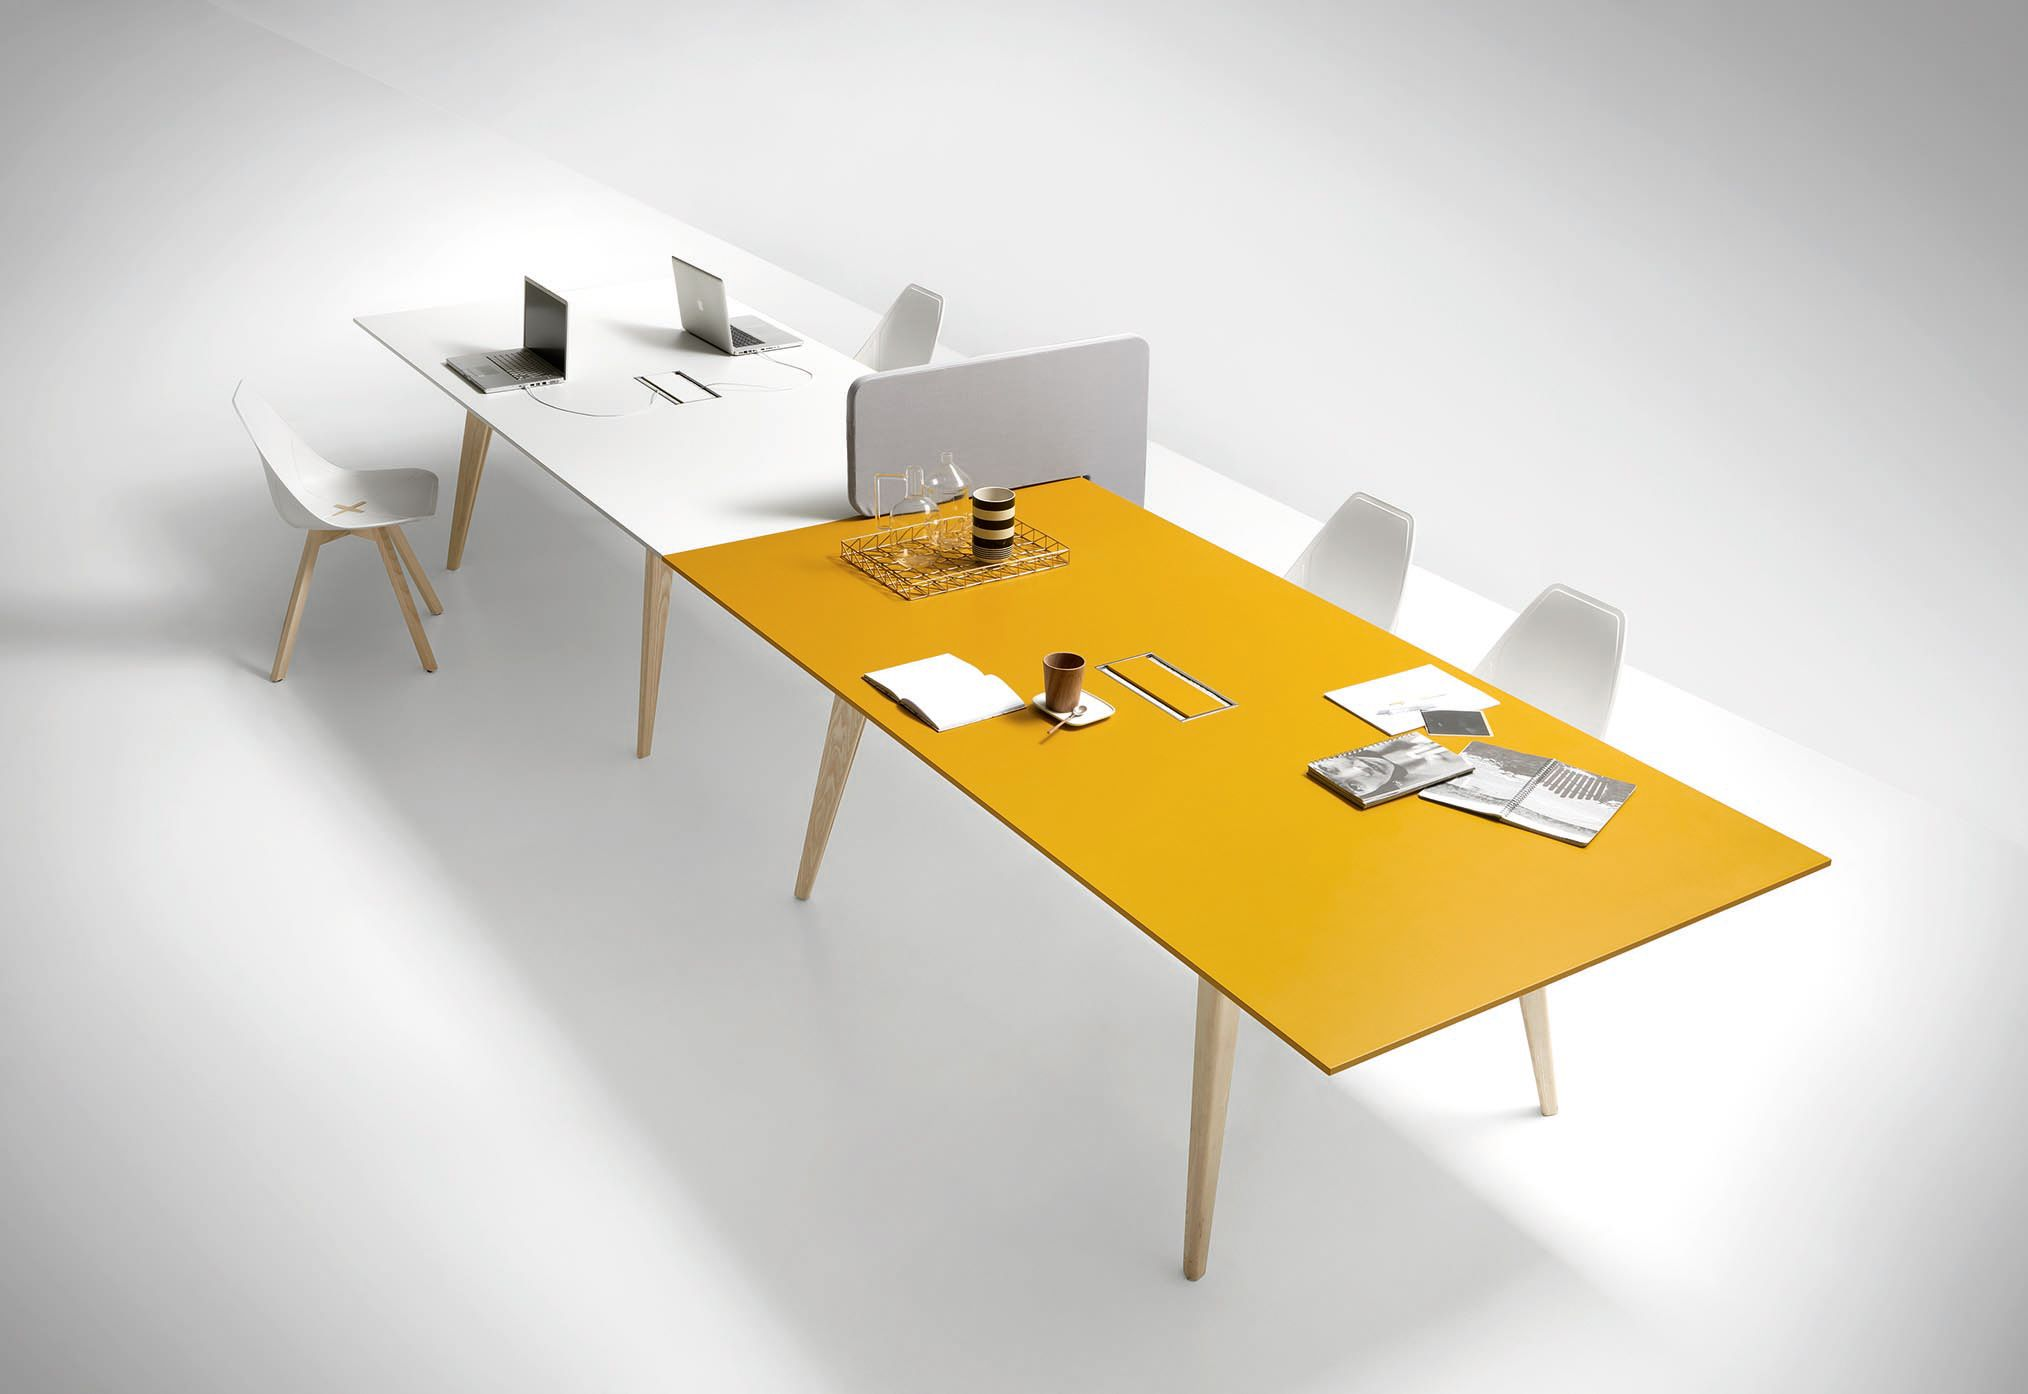 kyo light let the elegance enter in every office by martex italian office furniture martex italian office furniture pinterest - Herman Miller Tischsysteme